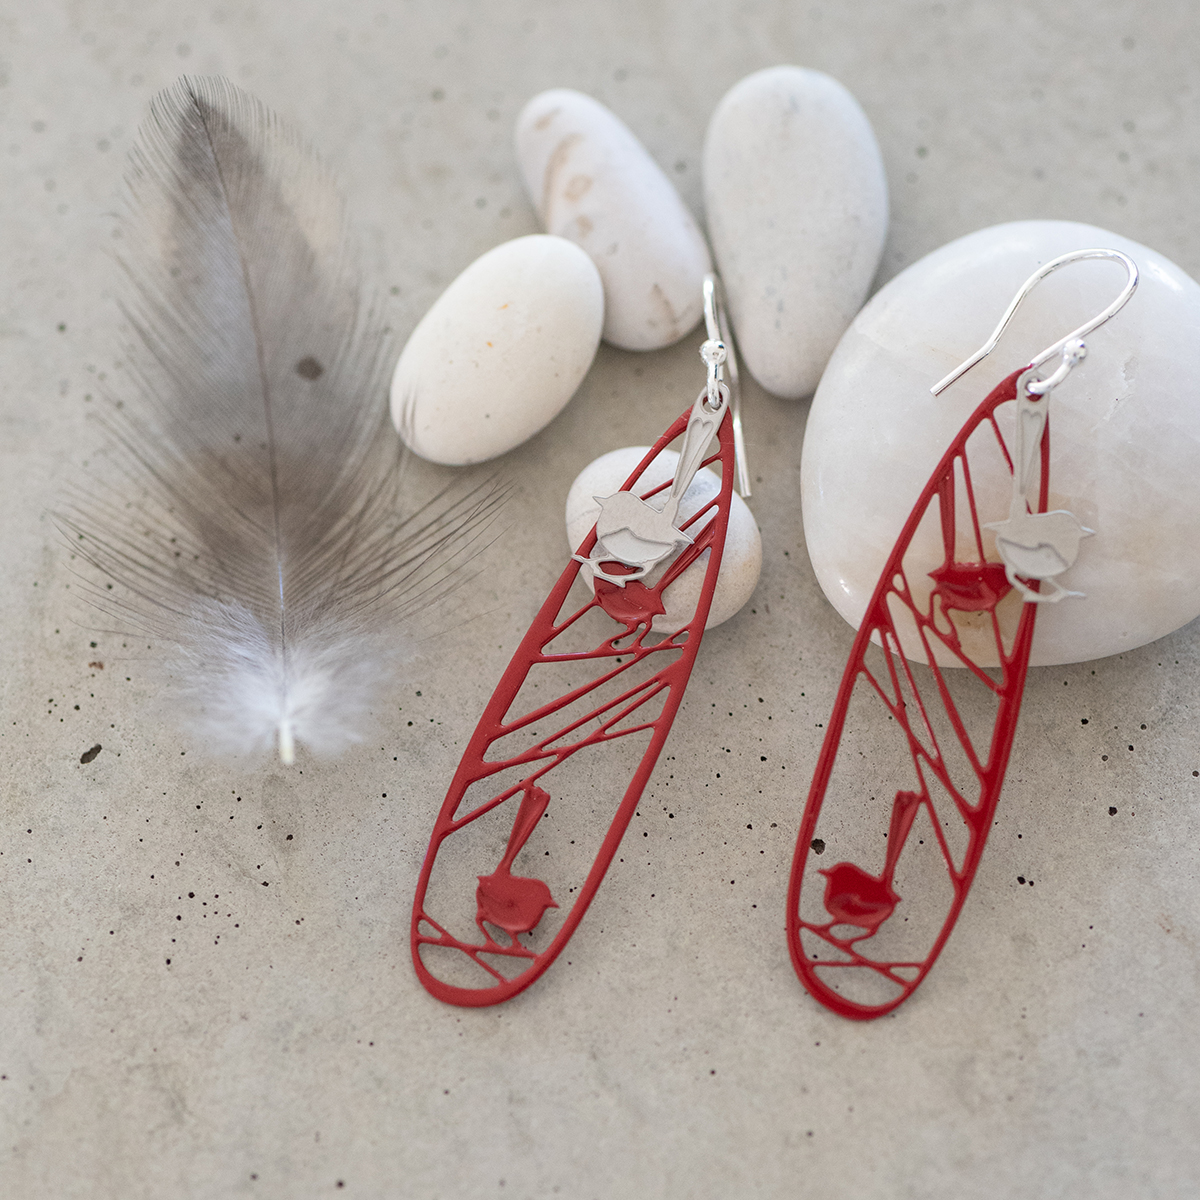 Popular wren earrings from the Fragile Flight collection available at Perth Upmarket